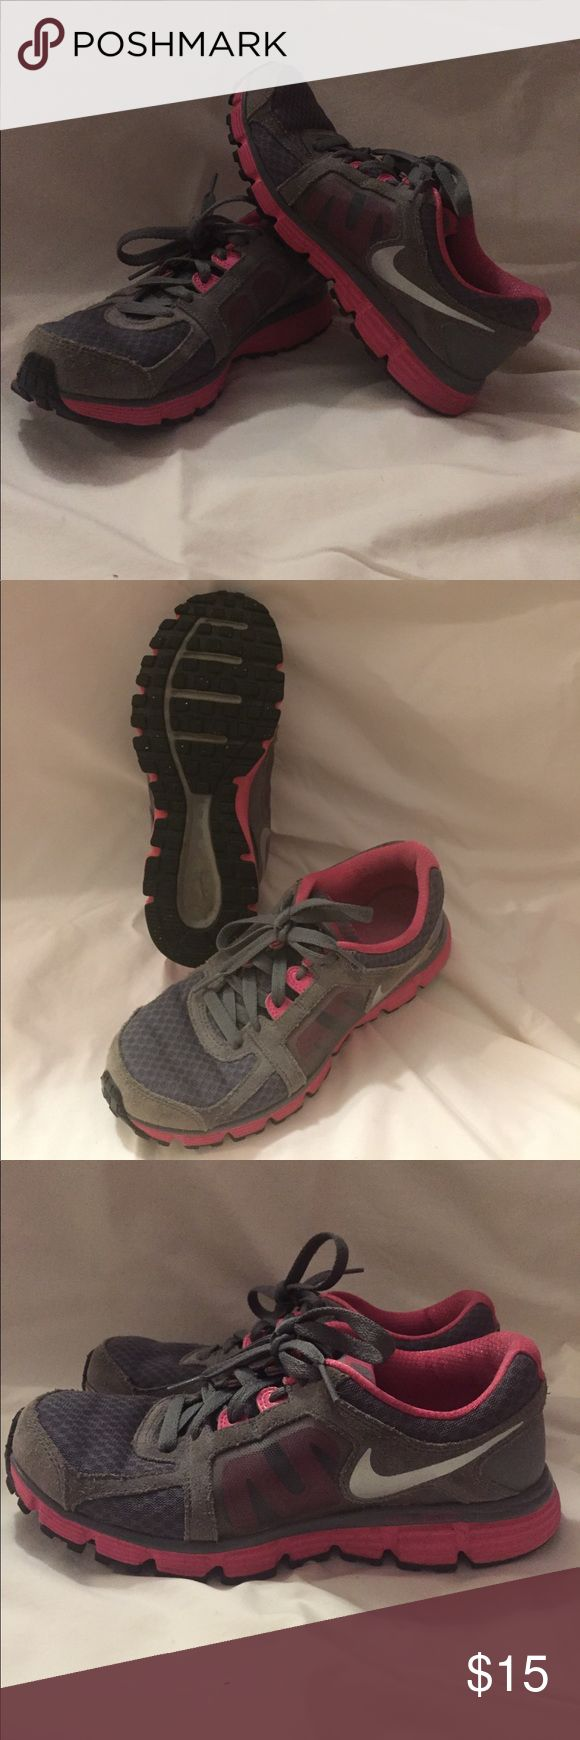 Nike Tennis Shoes NIKE DUAL FUSION ST2 Size 7 Super nice condition!! Nike Shoes Athletic Shoes